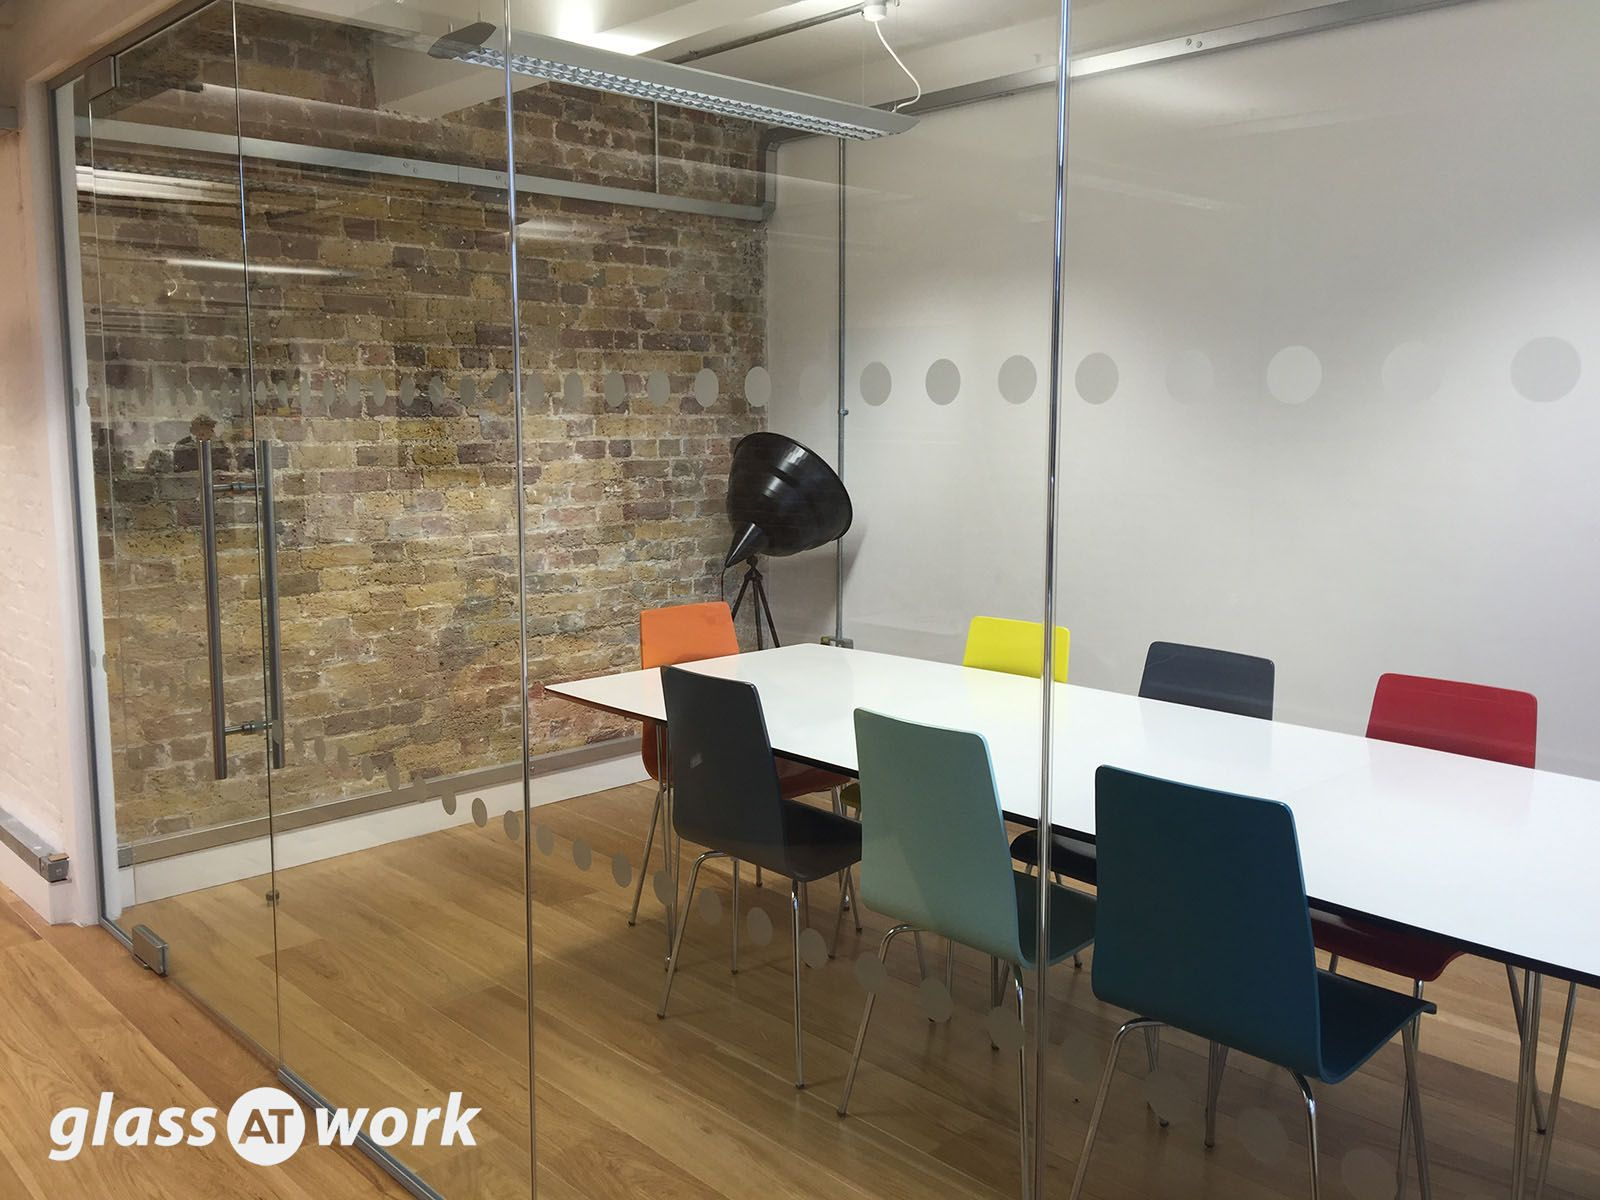 Glass Partition and Door for Hutch Games Ltd in London. & Glass Partitioning at Hutch Games Ltd (London): Glass Partition ...